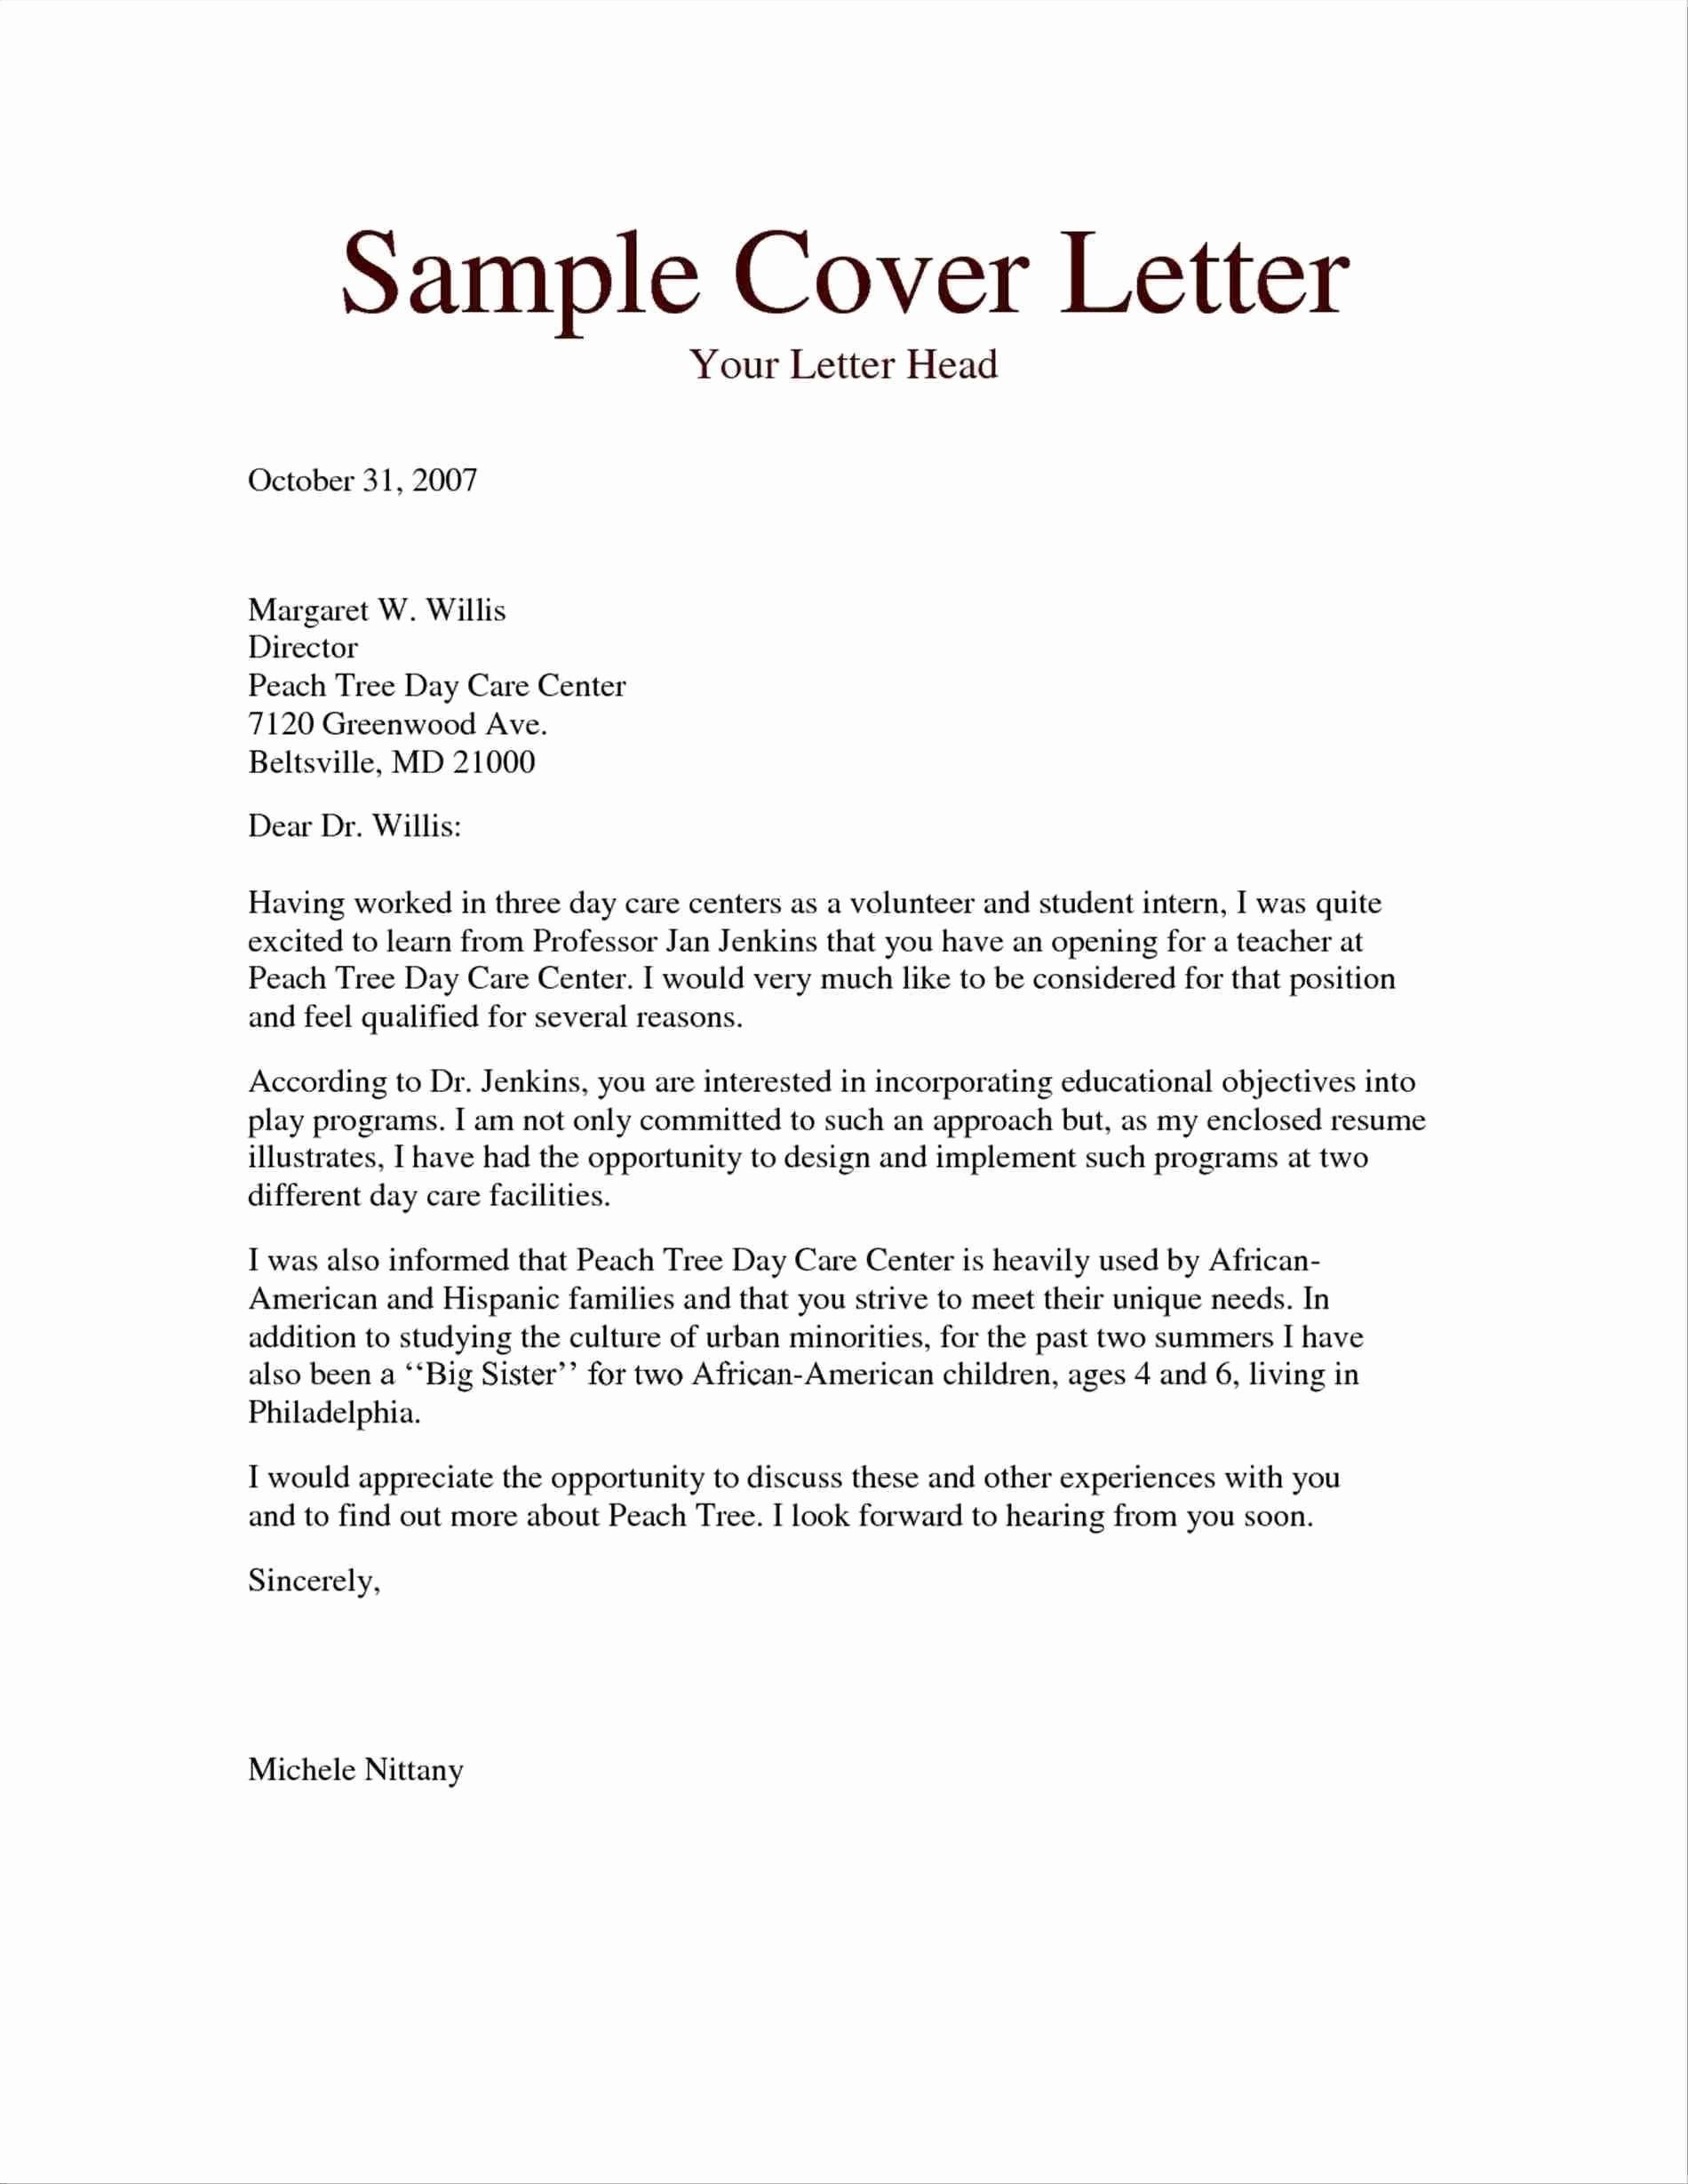 26 Medical Assistant Cover Letter Examples In 2020 Cover Letter